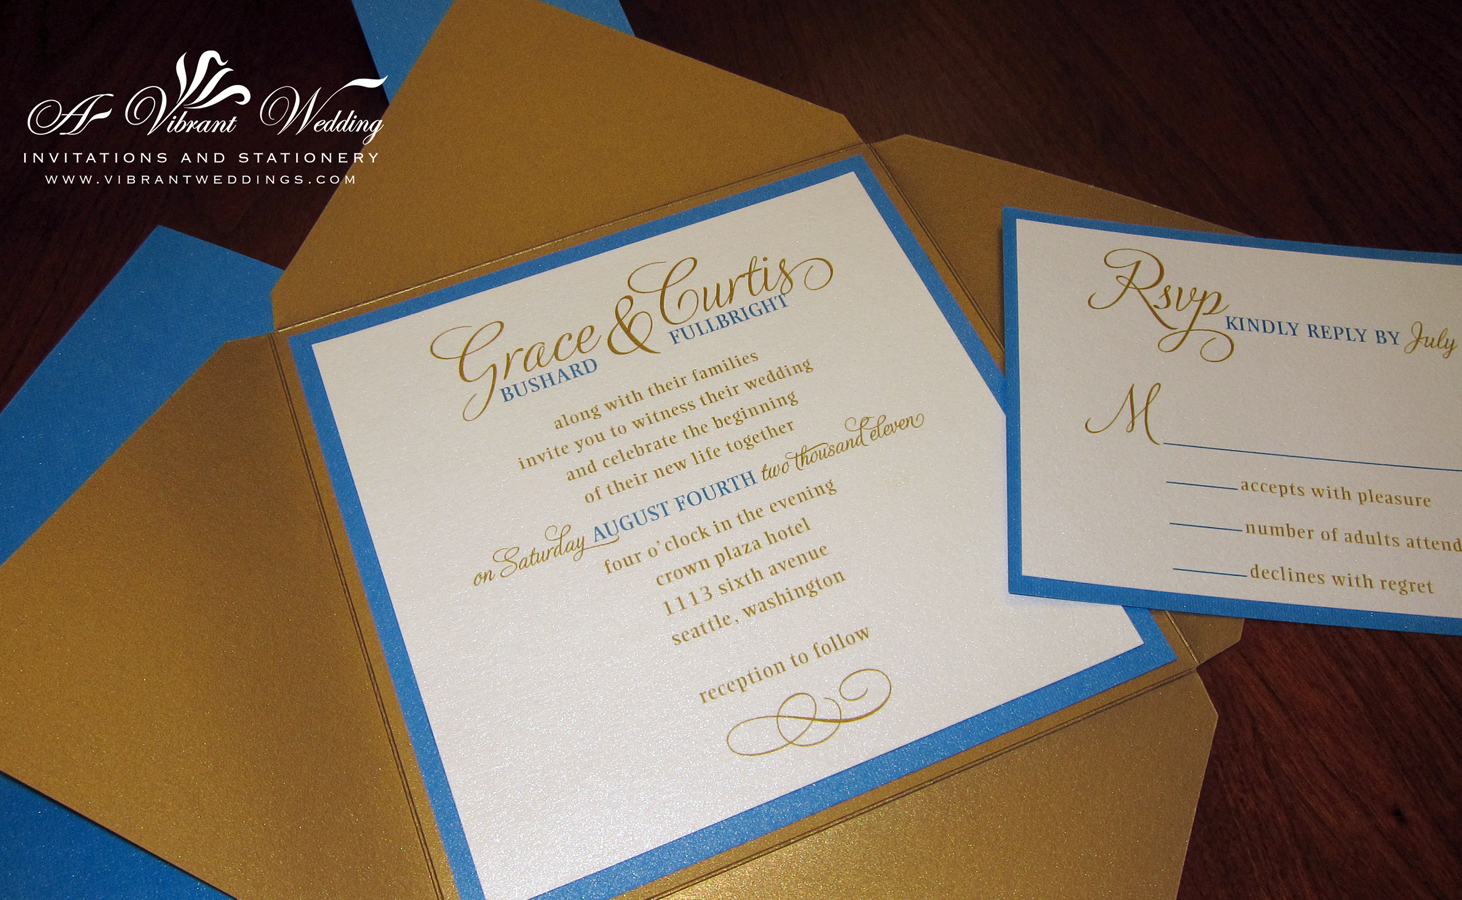 gold wedding invitation  u2013 a vibrant wedding